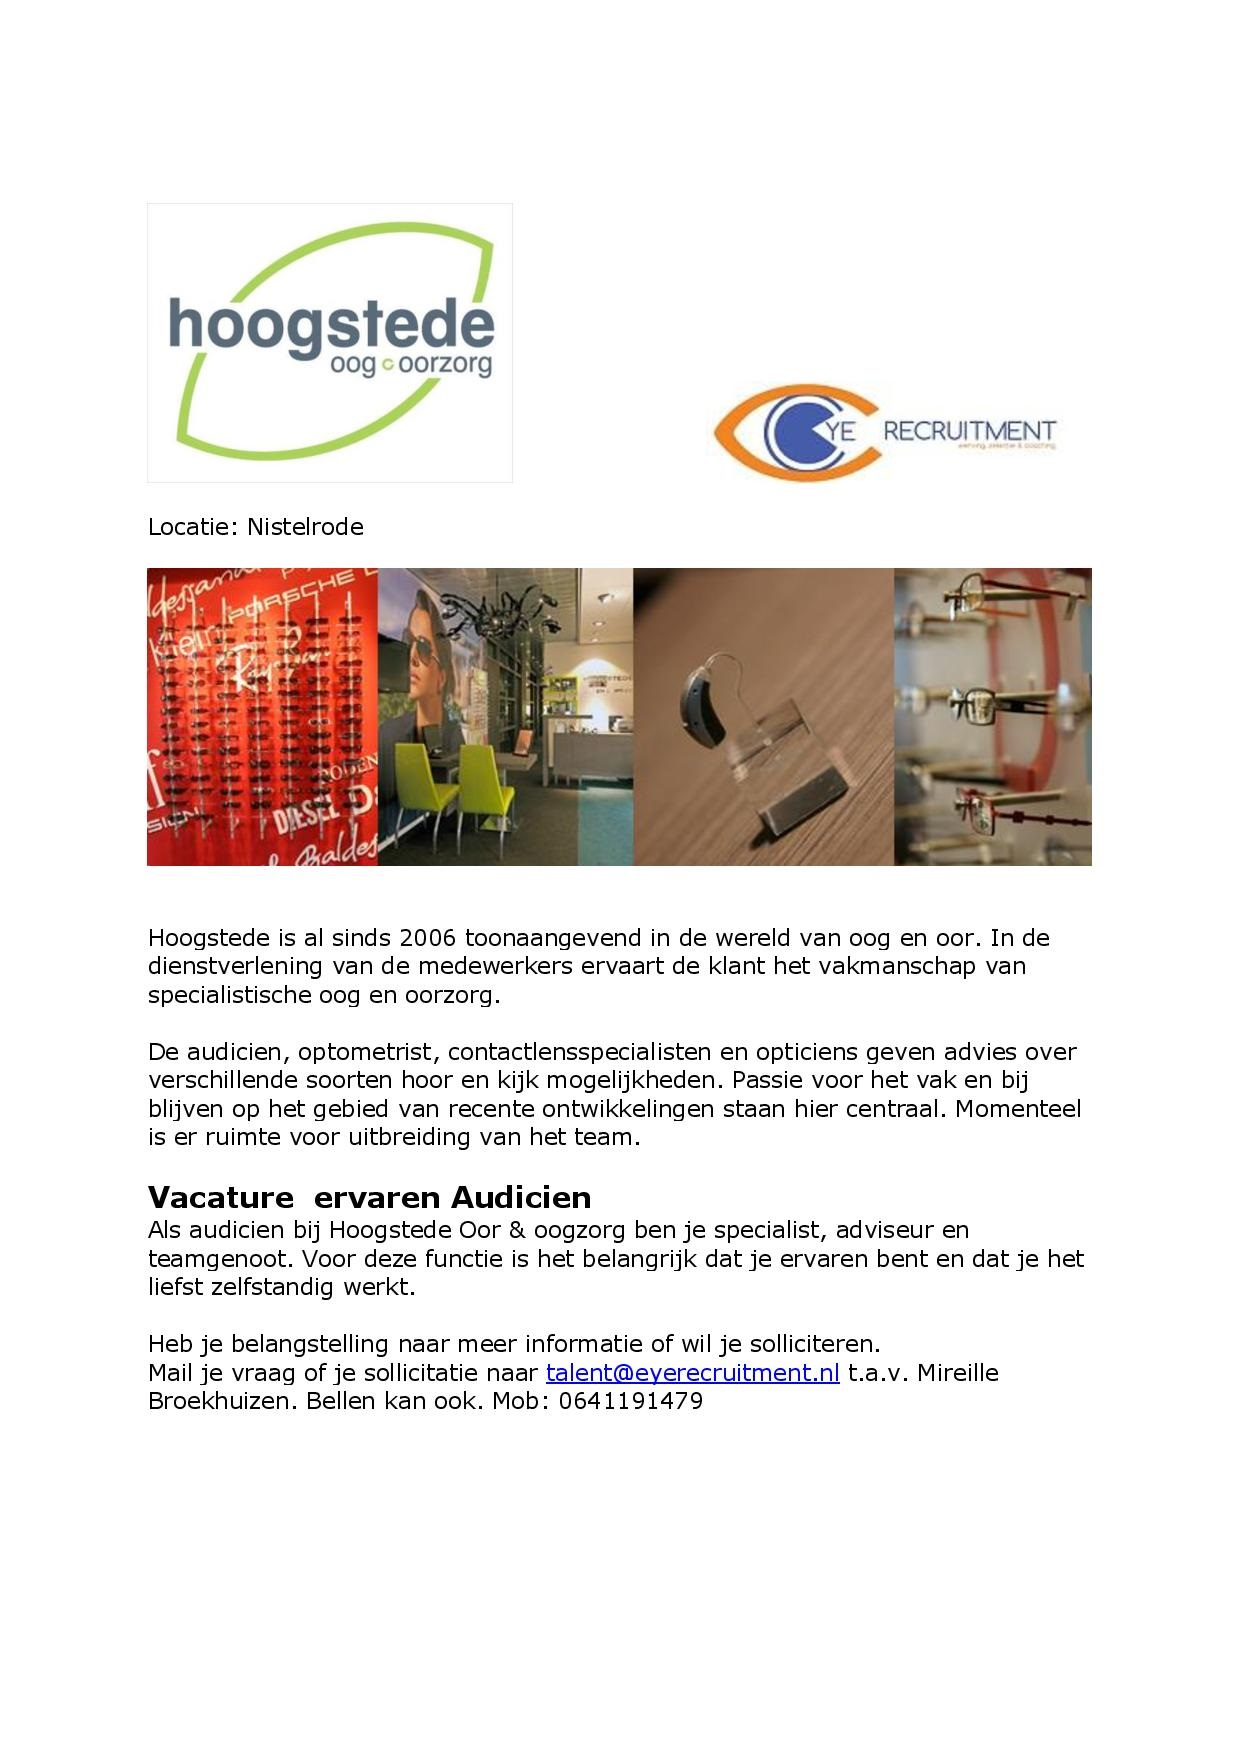 vacature audicien-hoogstede (2)